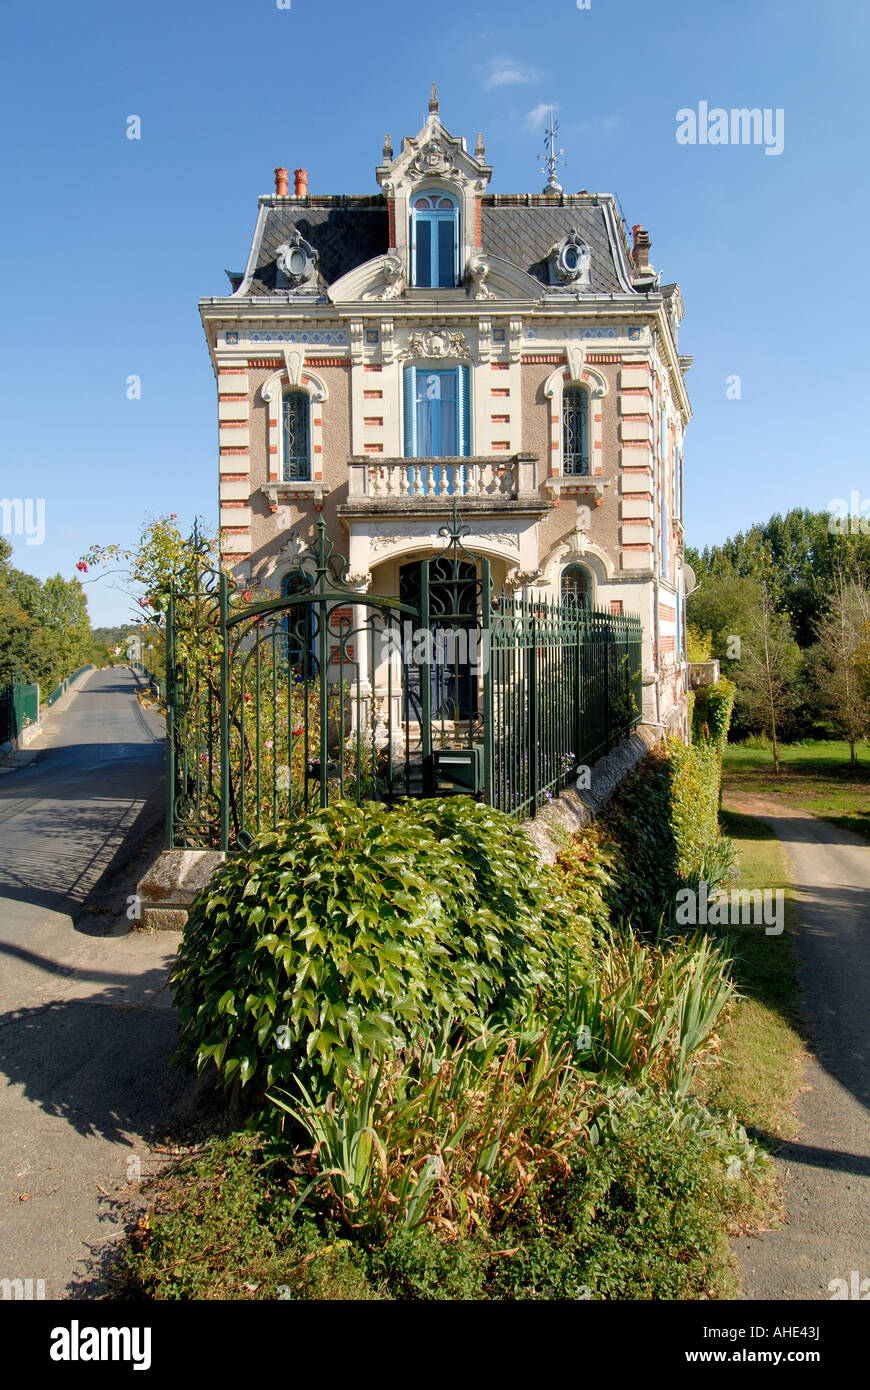 Narrow frontage of riverside villa, Vicq-sur-Gartempe, Vienne, France. - Stock Image